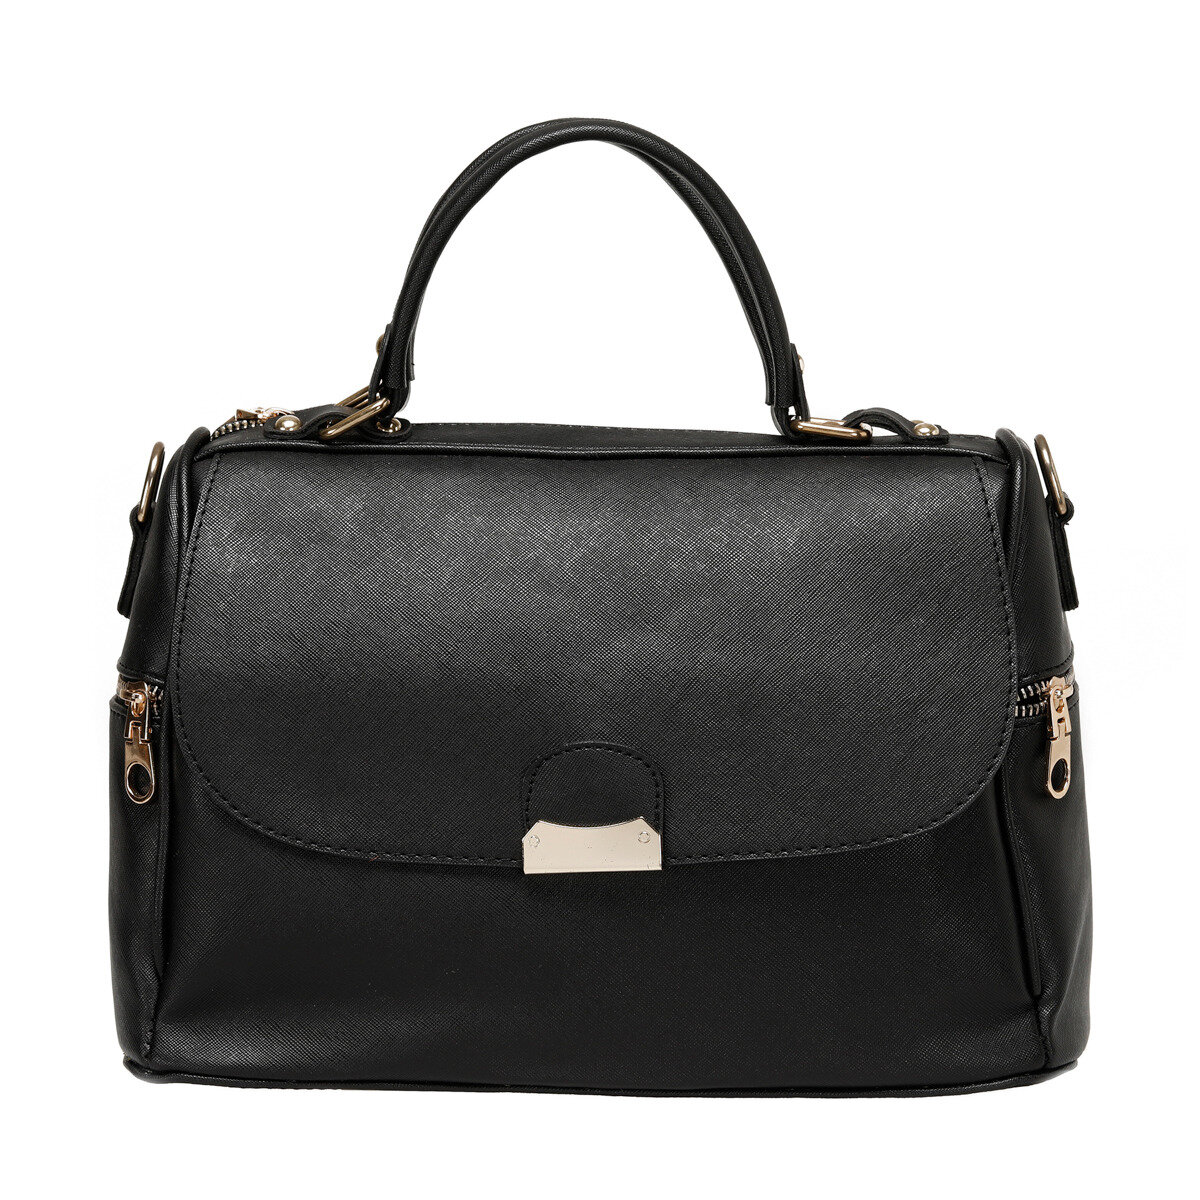 FLO 91.960. 751.C Black Women Handbag Polaris